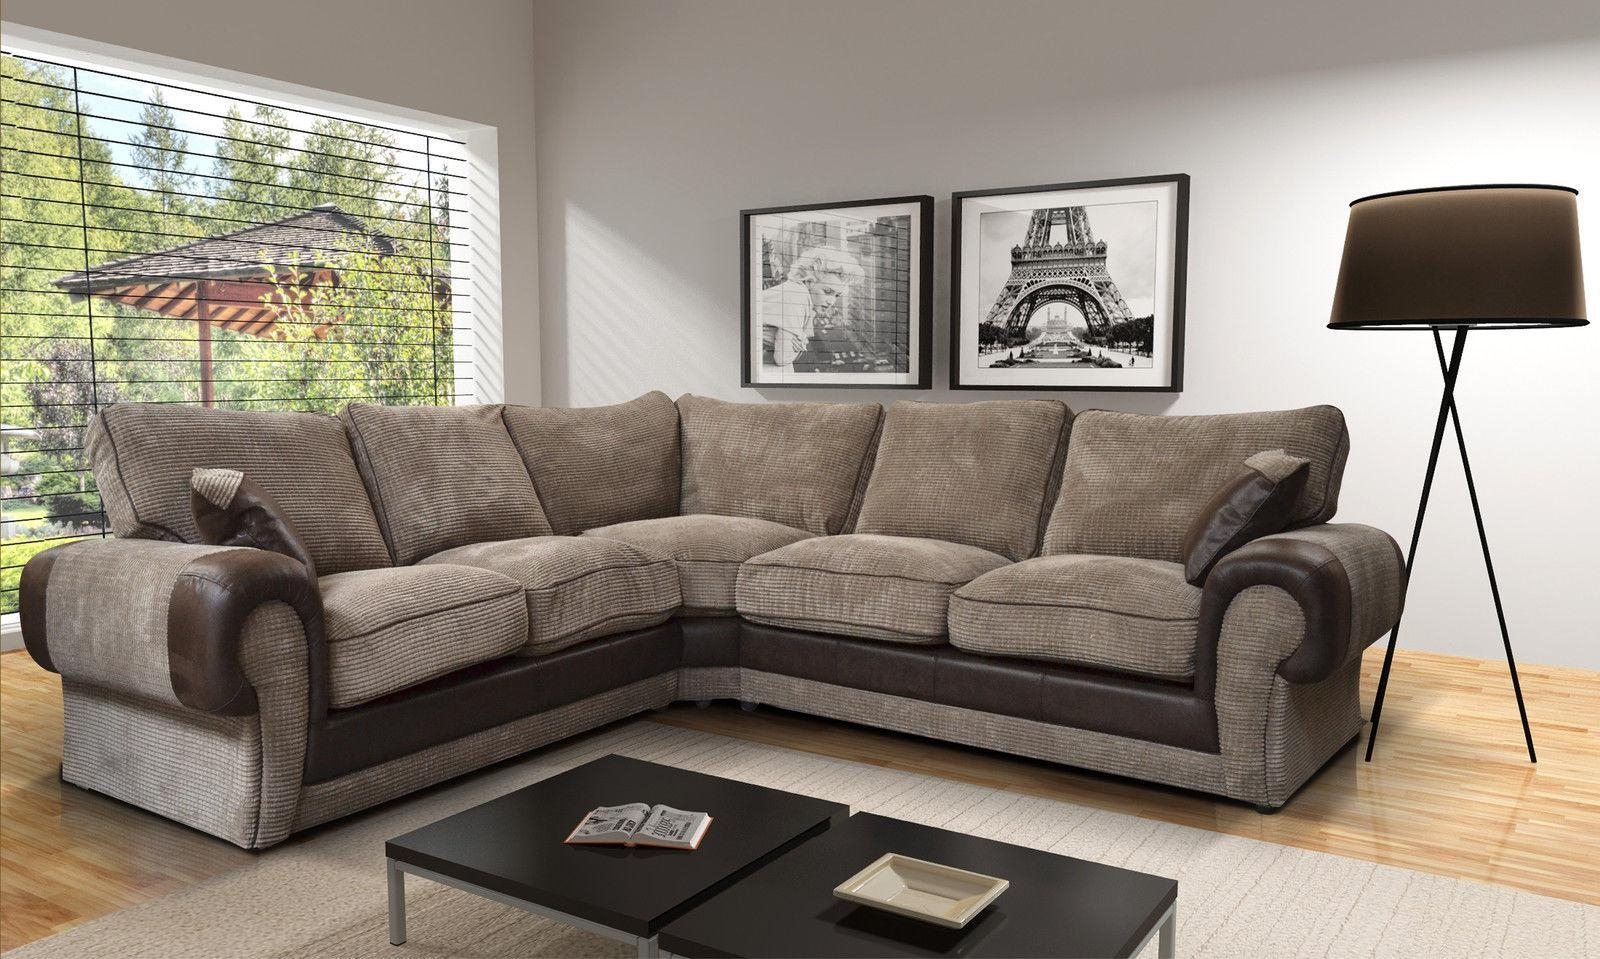 Mayfair Corner Sofa – Dublin, Ireland Furniture Store | Rightstyle Throughout Corner Sofa Chairs (Image 15 of 20)